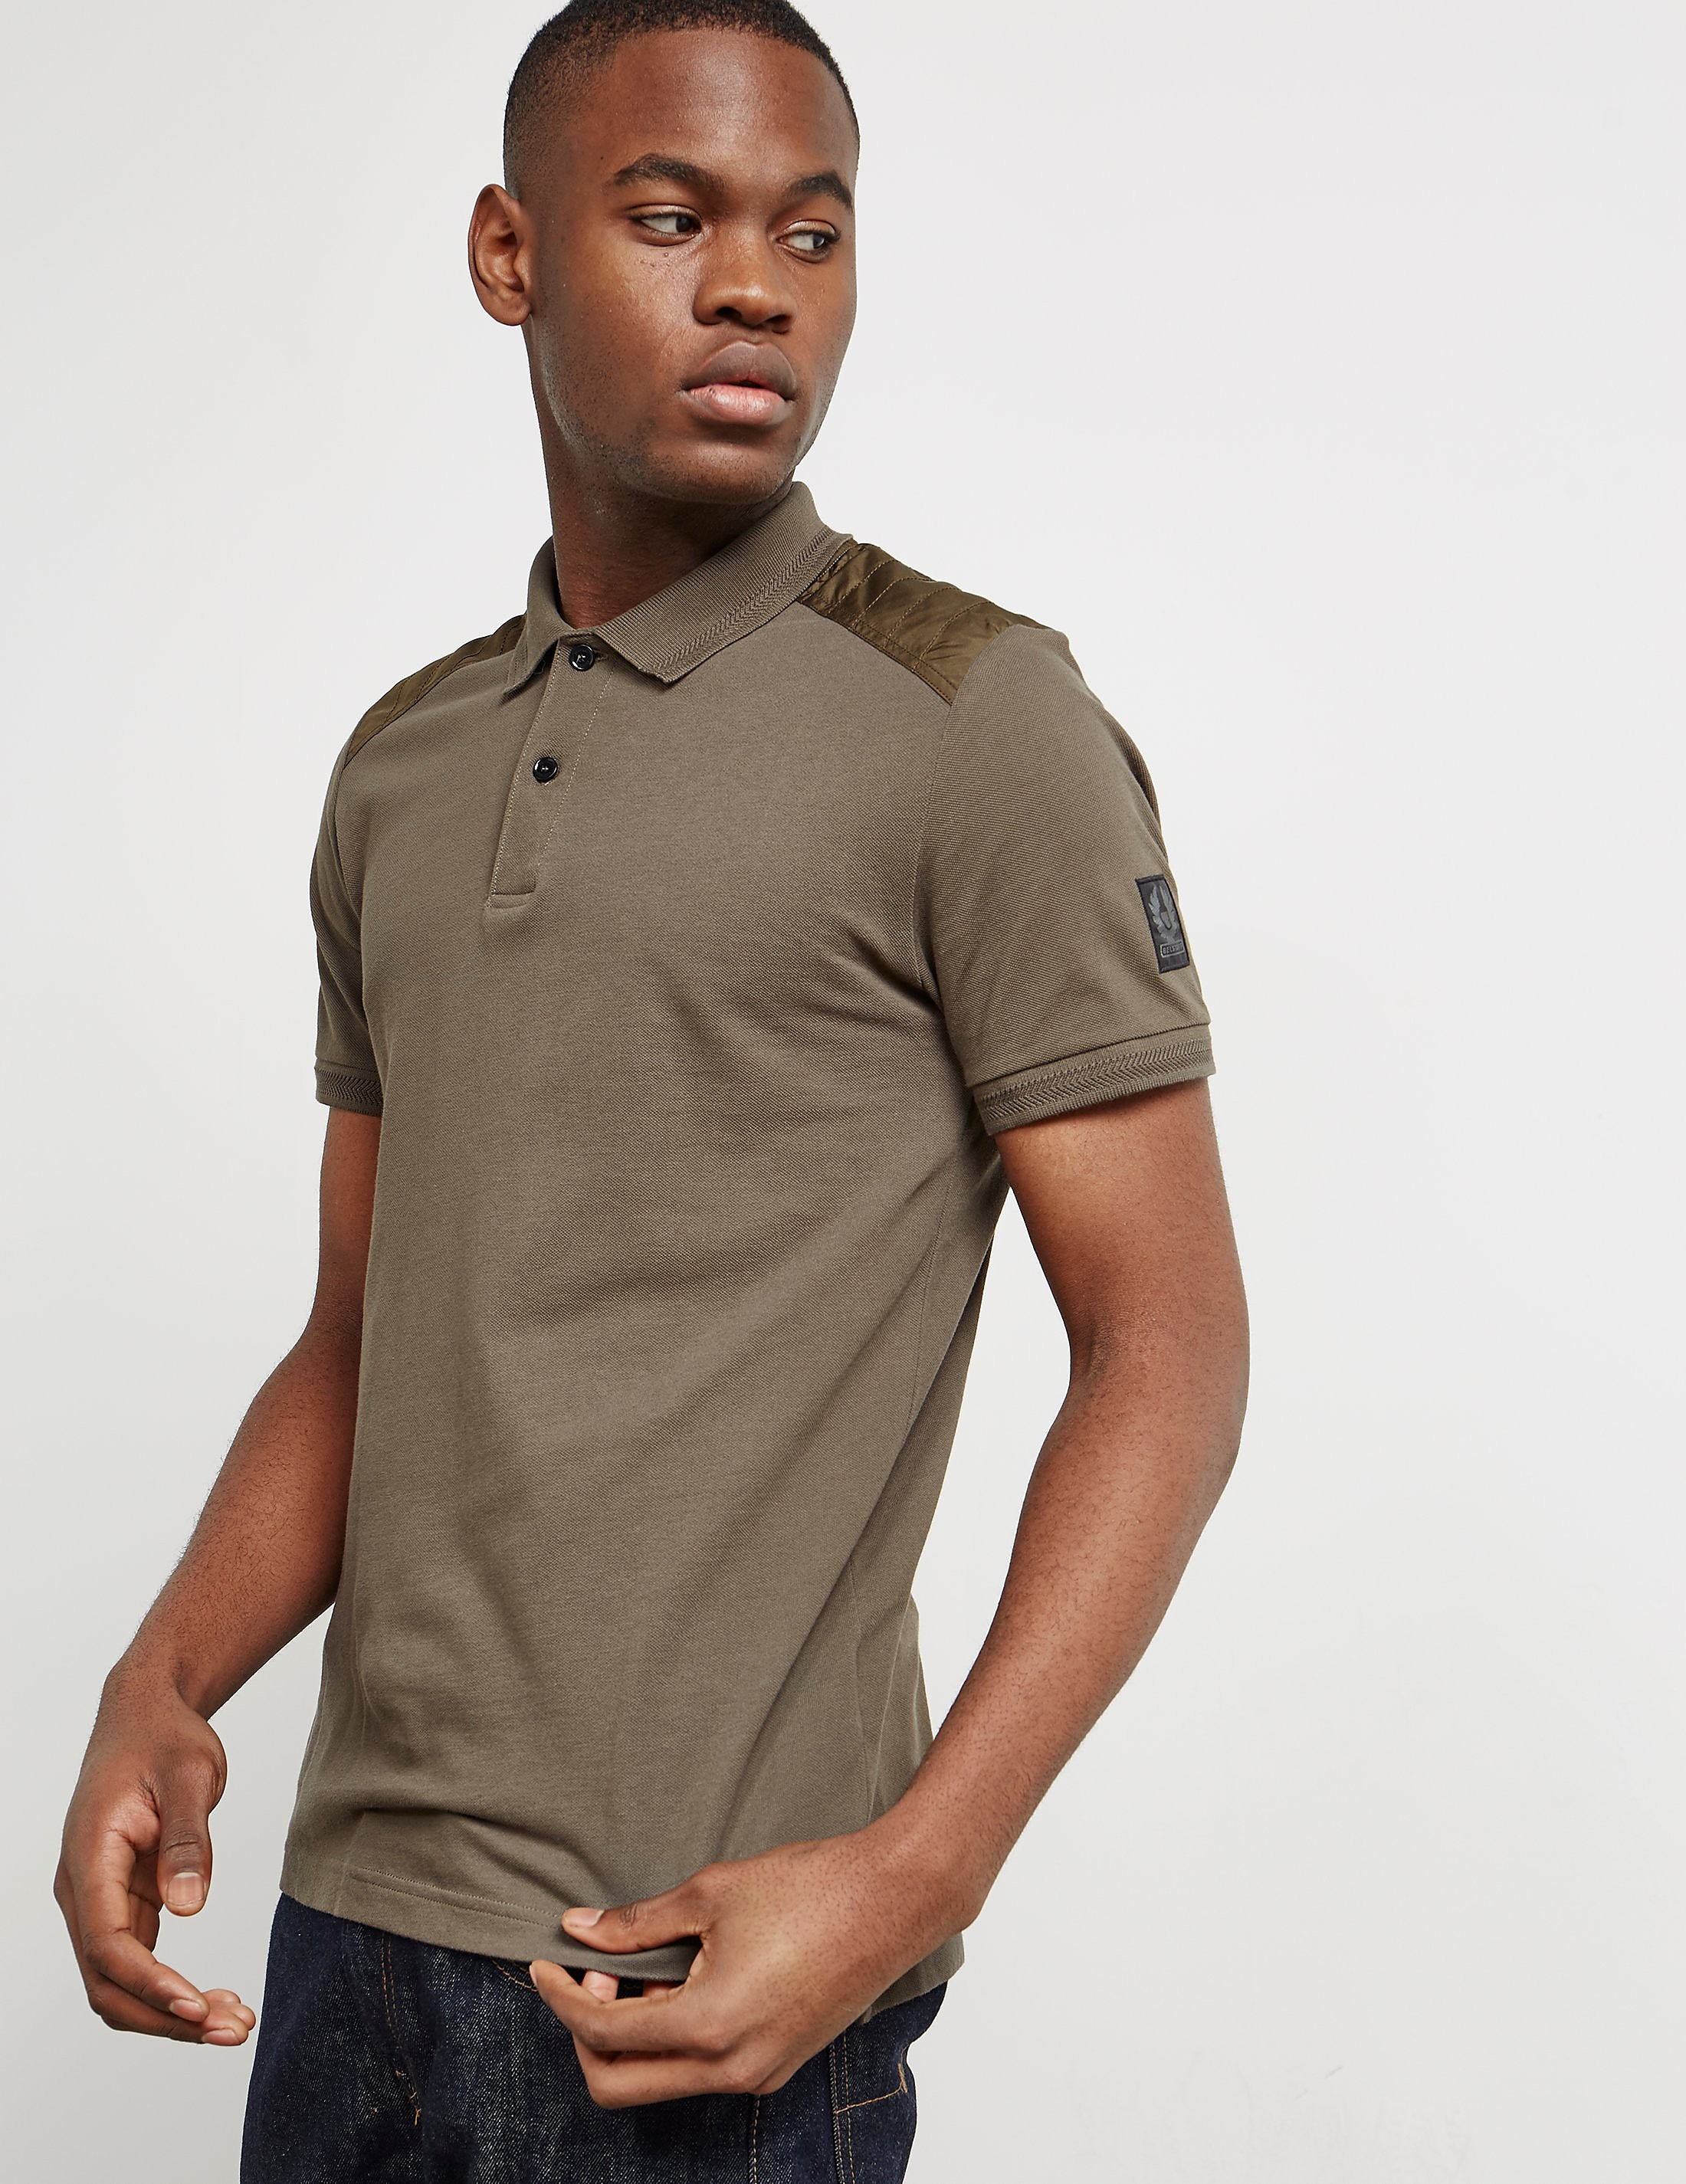 Belstaff Short Sleeve Polo Shirt